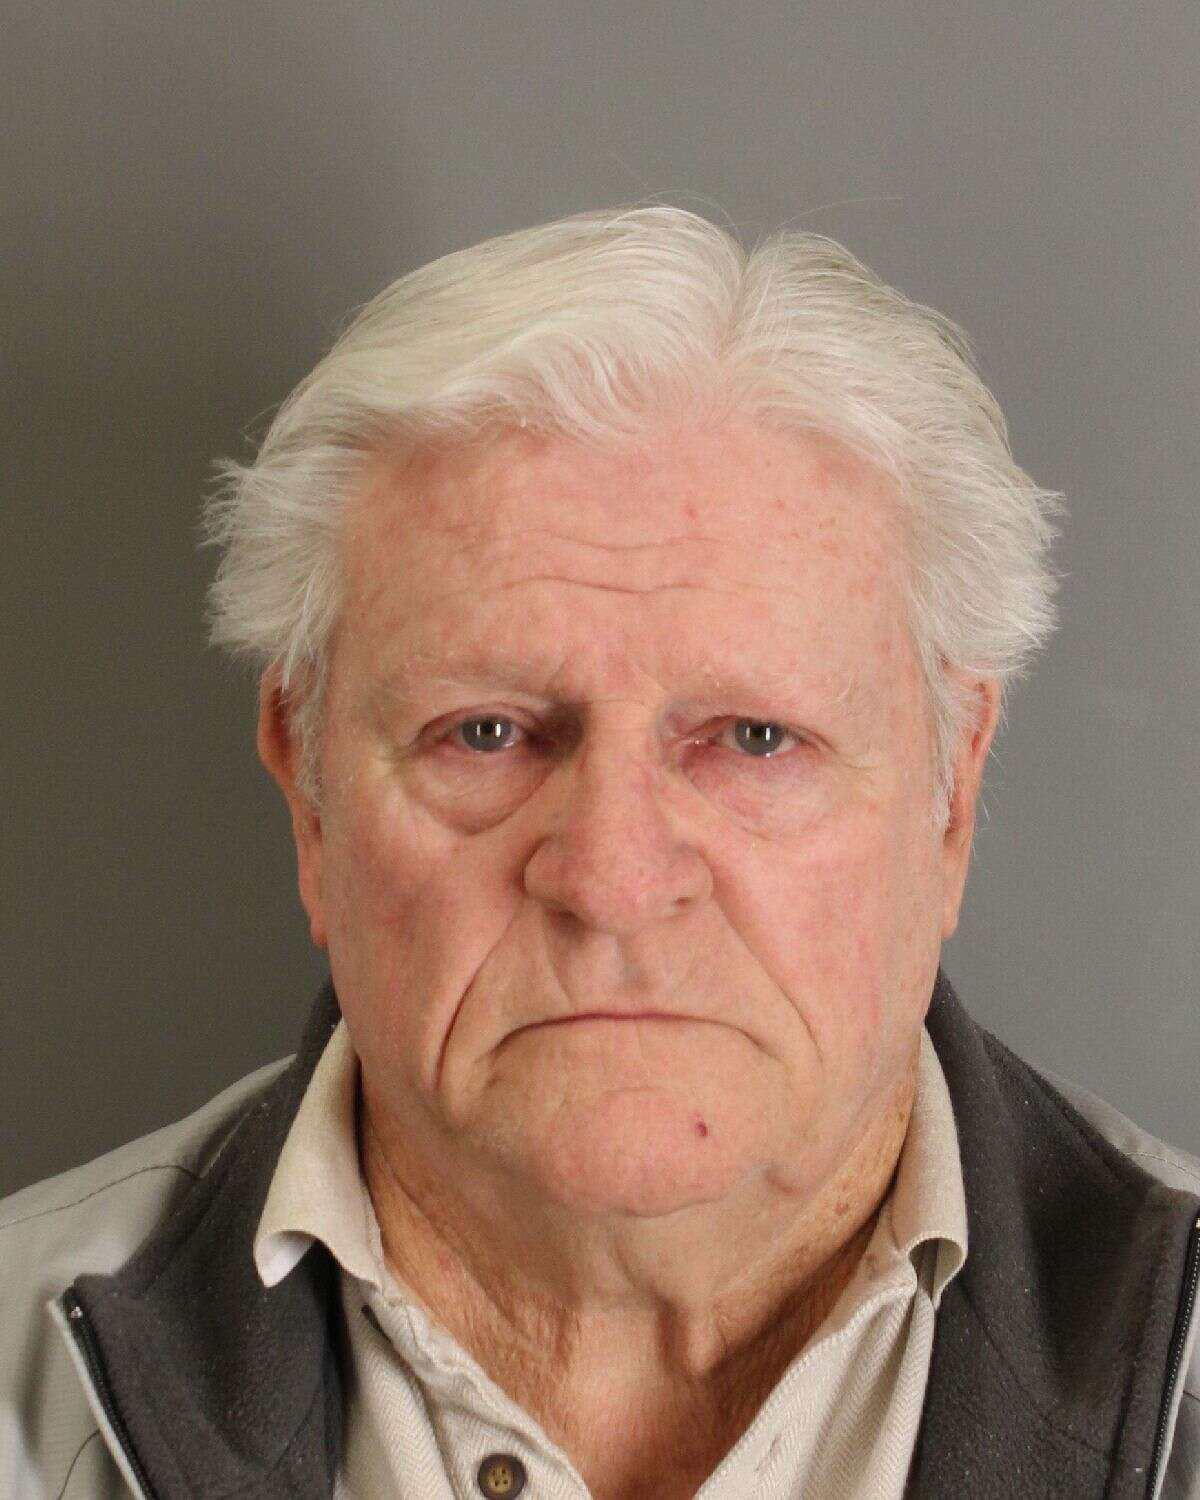 Charles Crauford, 75, of Beaumont. Click through to see all registered sex offenders in Beaumont